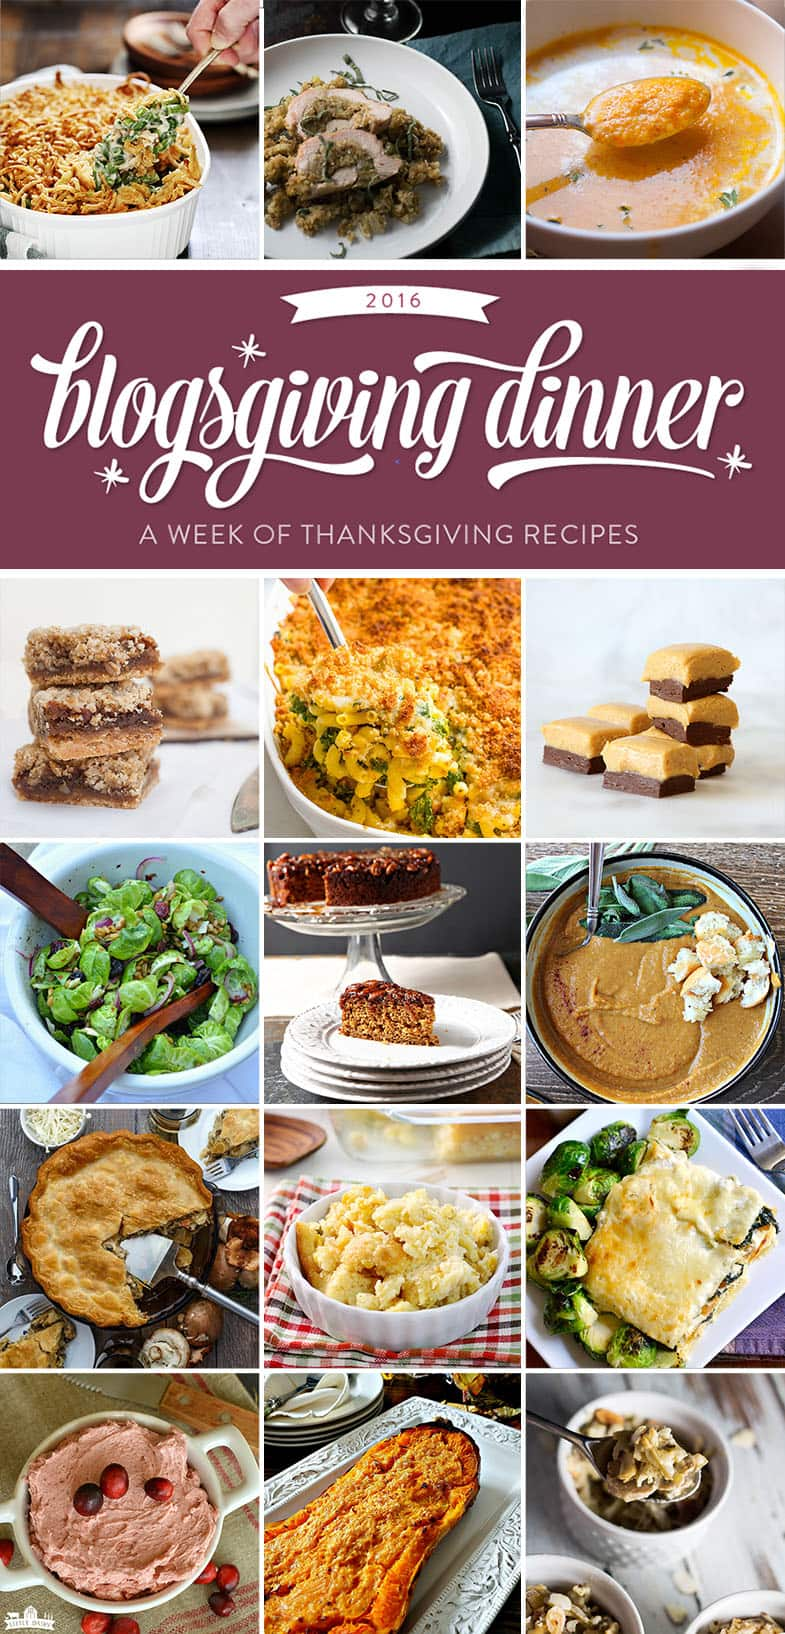 2016 Blogsgiving - Thanksgiving thrown by bloggers.